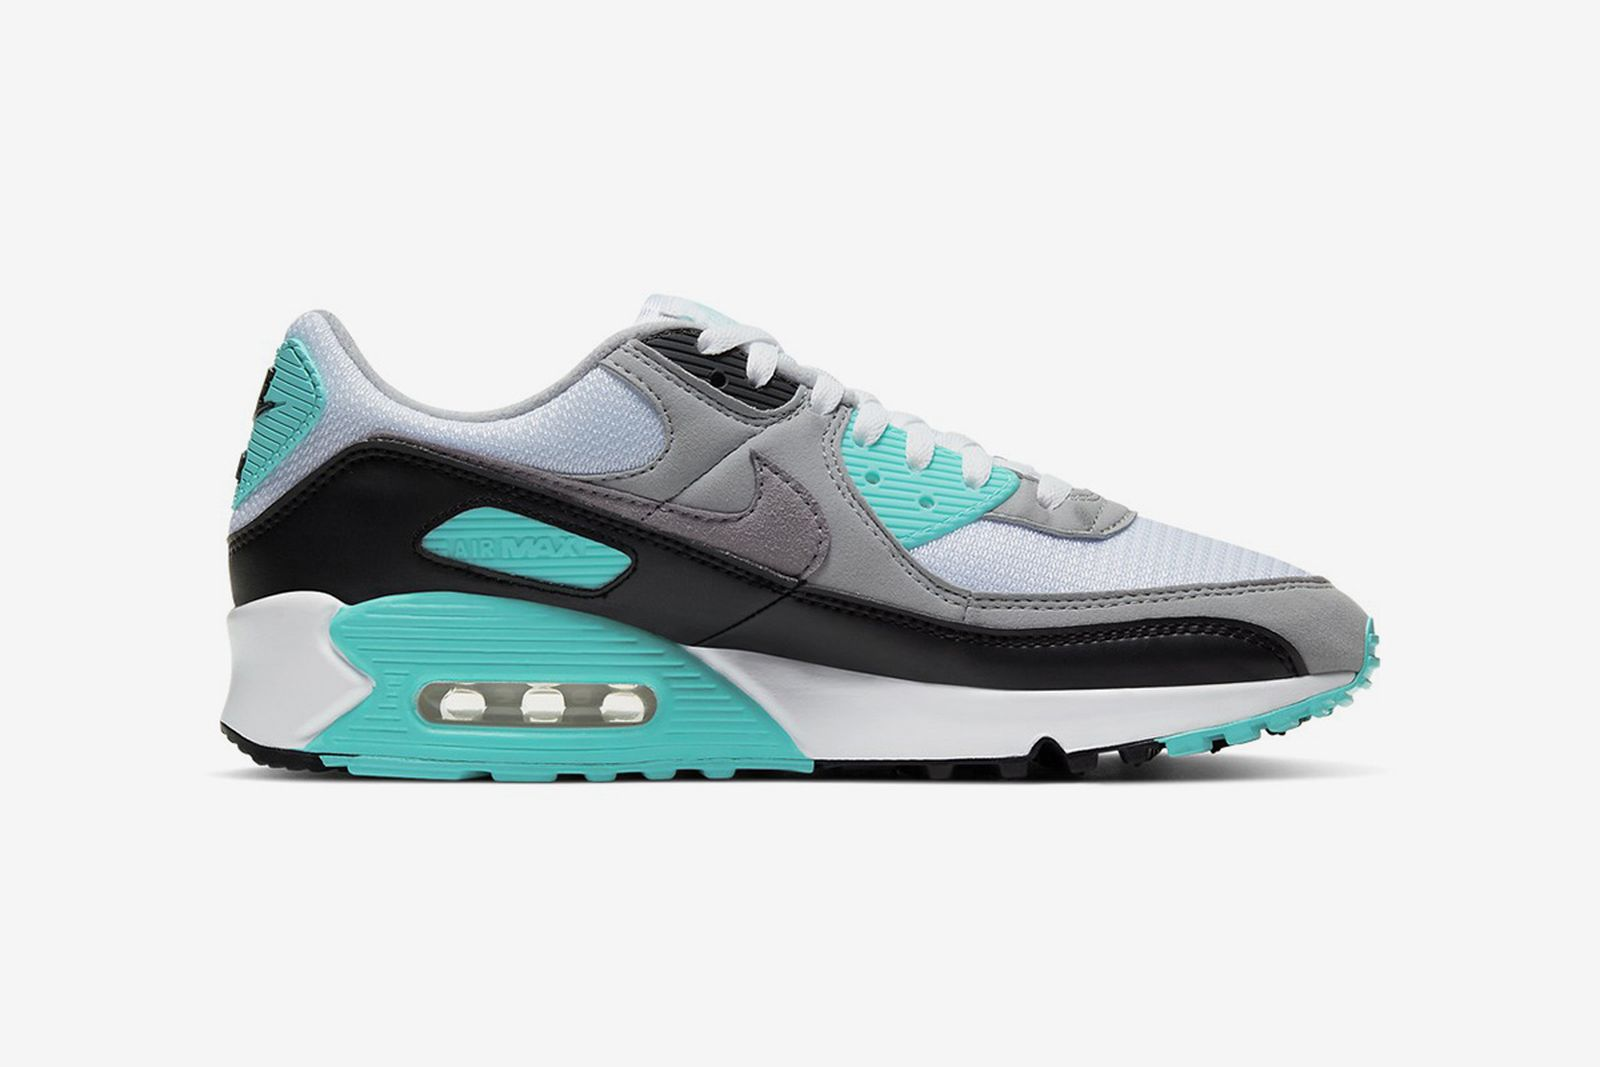 nike-air-max-90-30th-anniversary-colorways-release-date-price-1-02